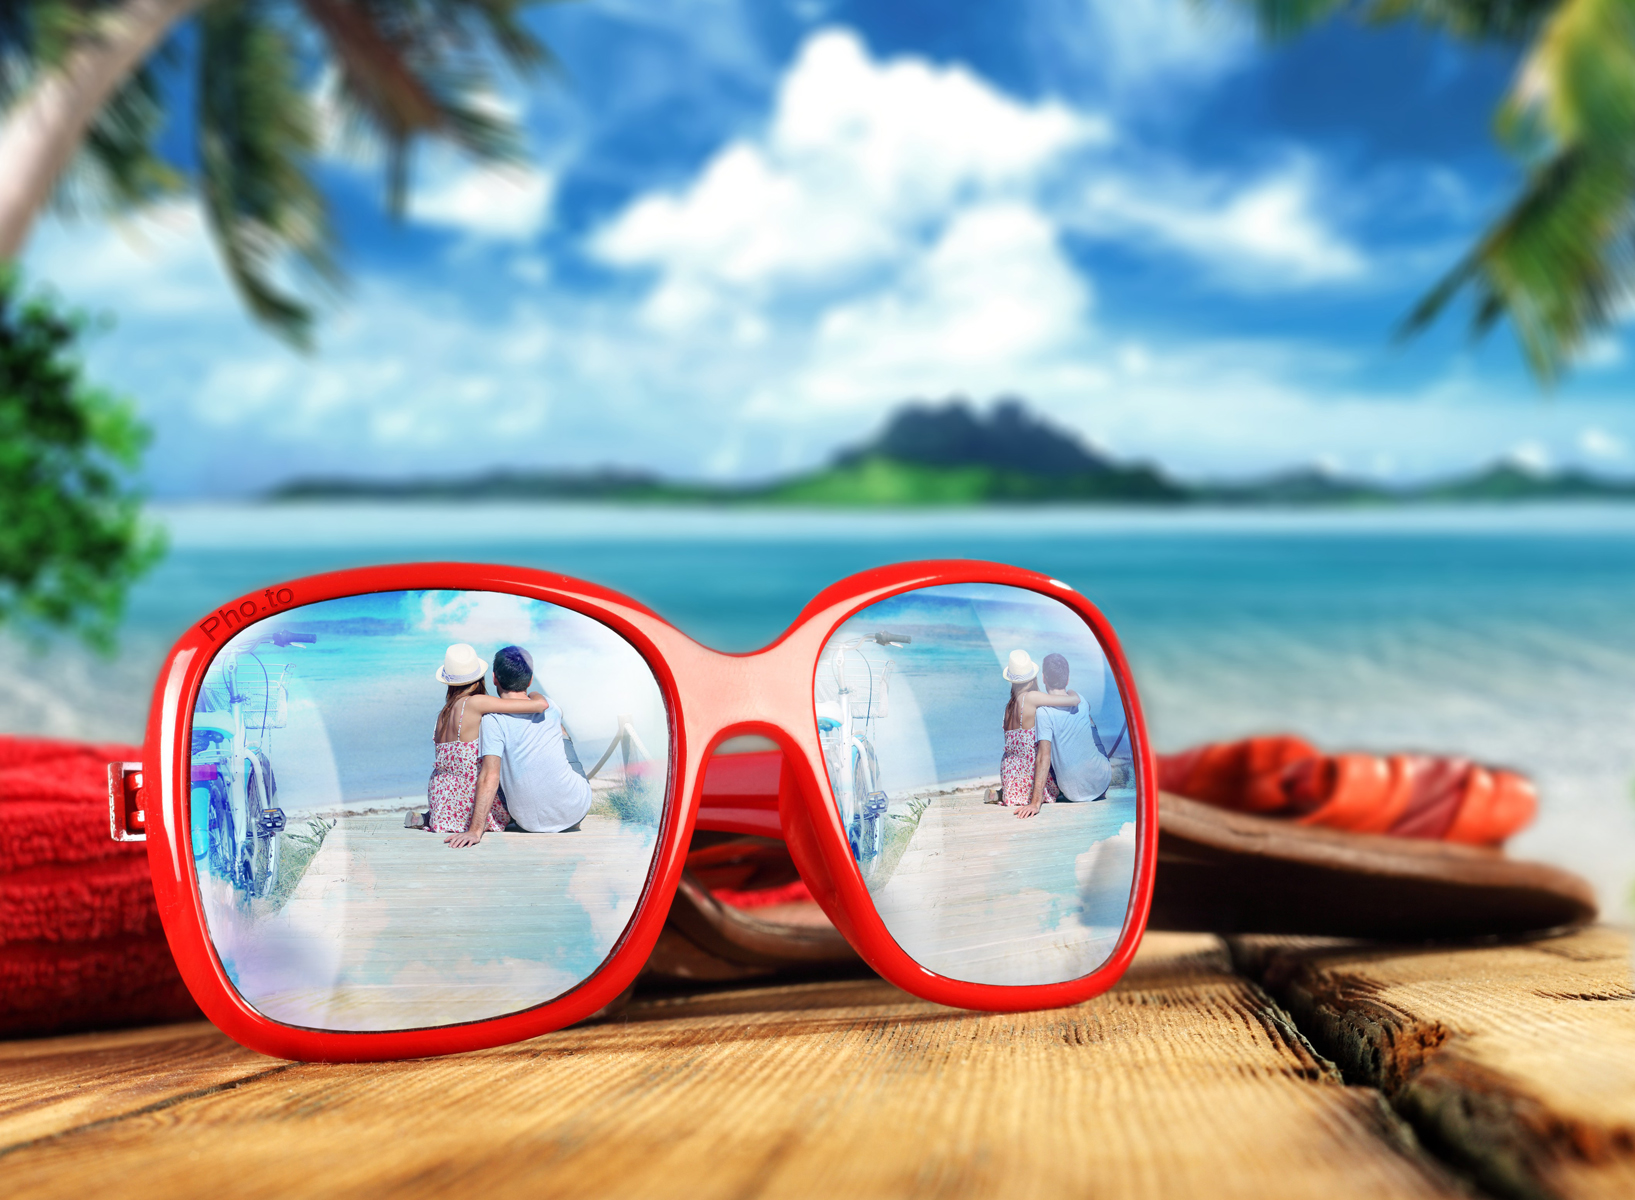 Summer photo of a loving couple with sunglasses picture frame applied